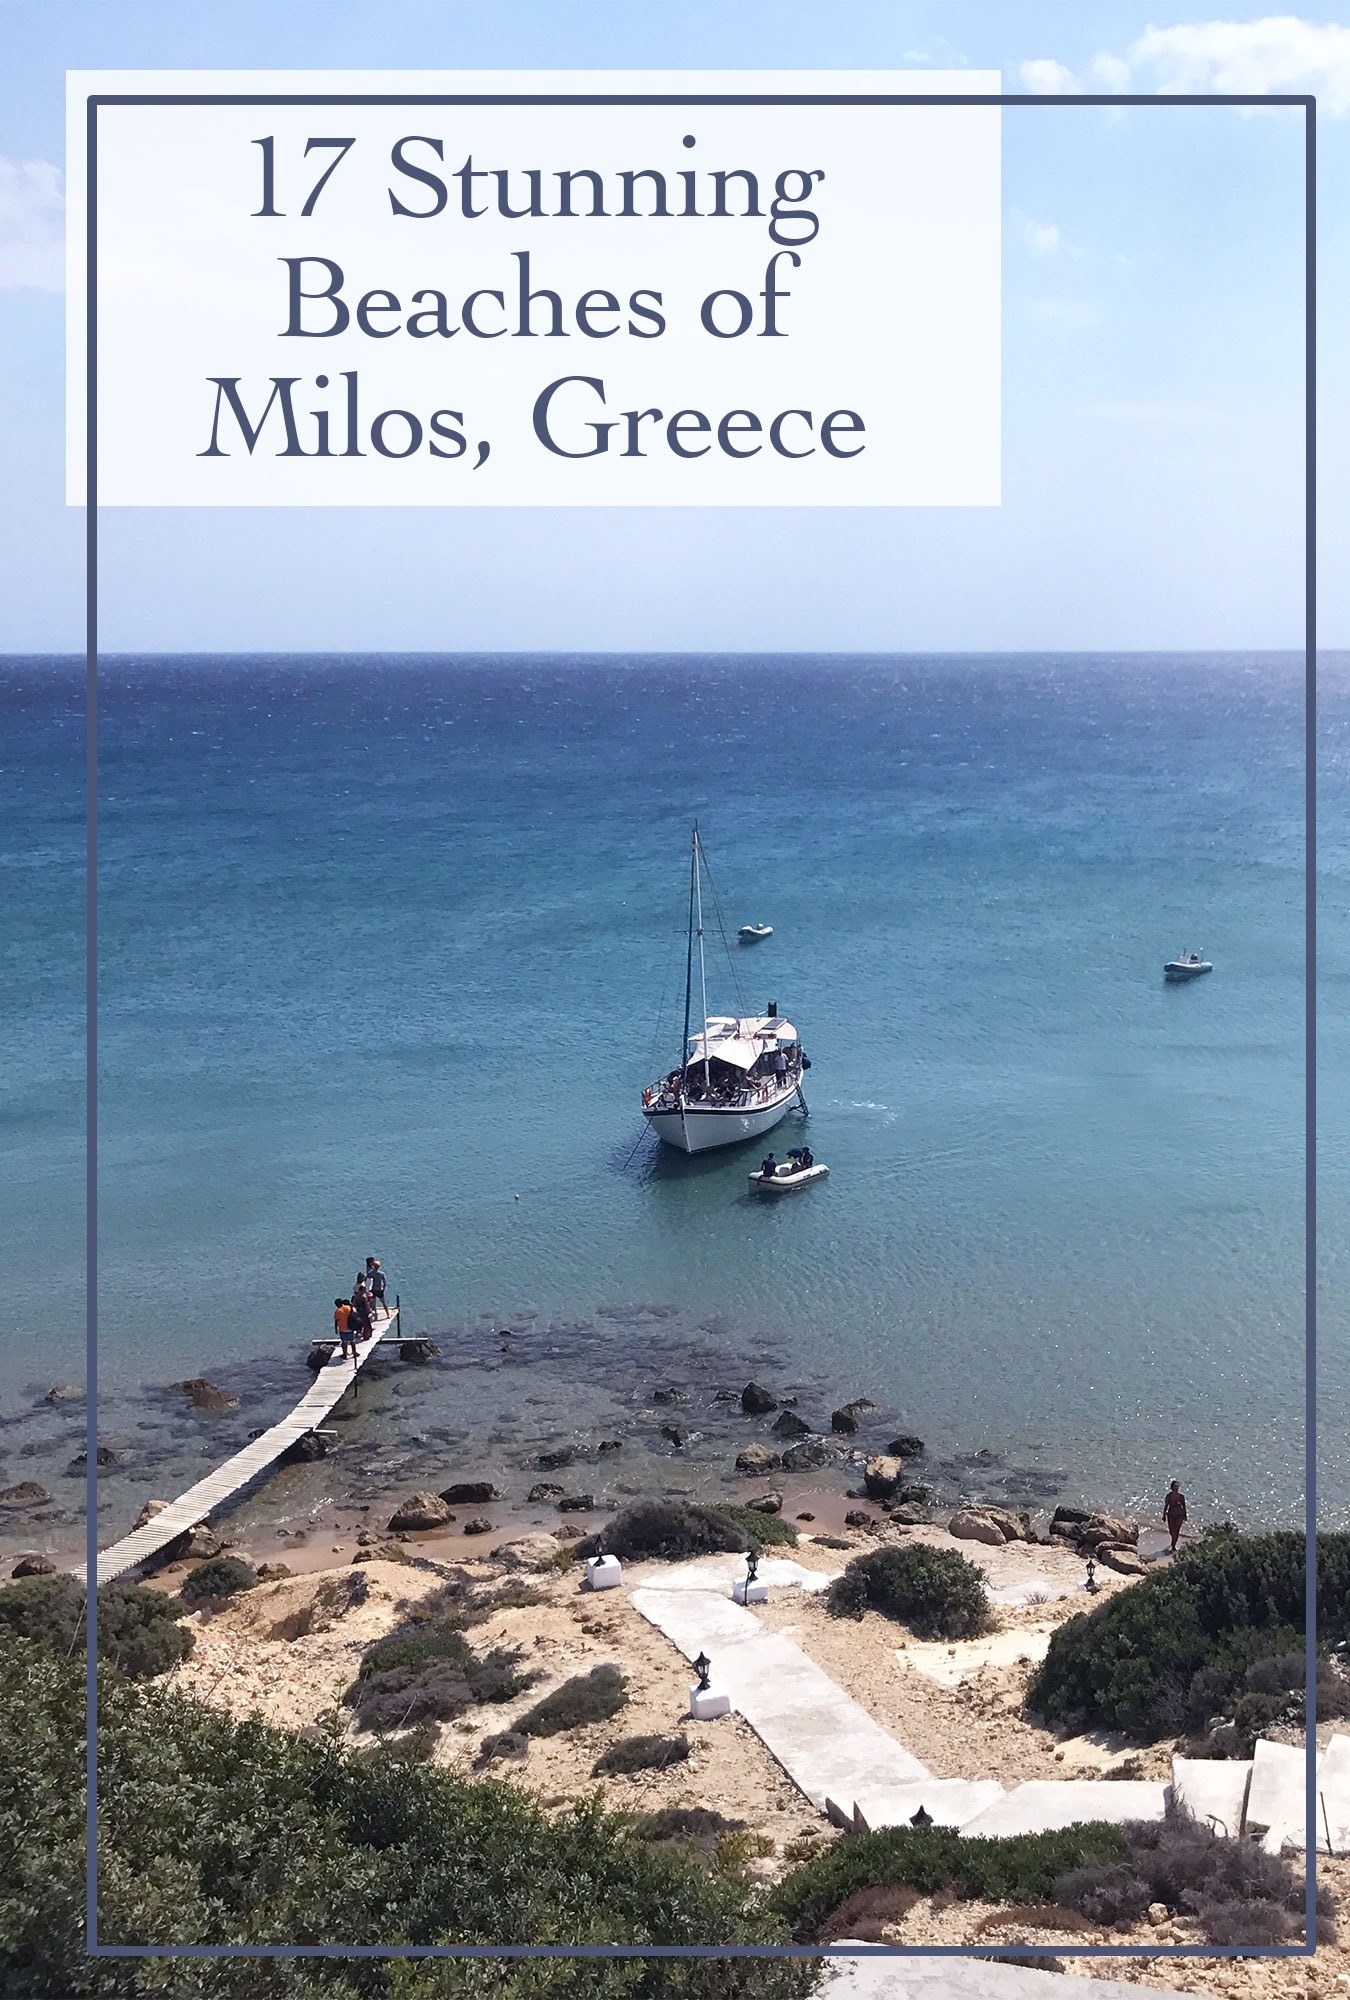 Top 17 Beaches on the island of Milos, Greece